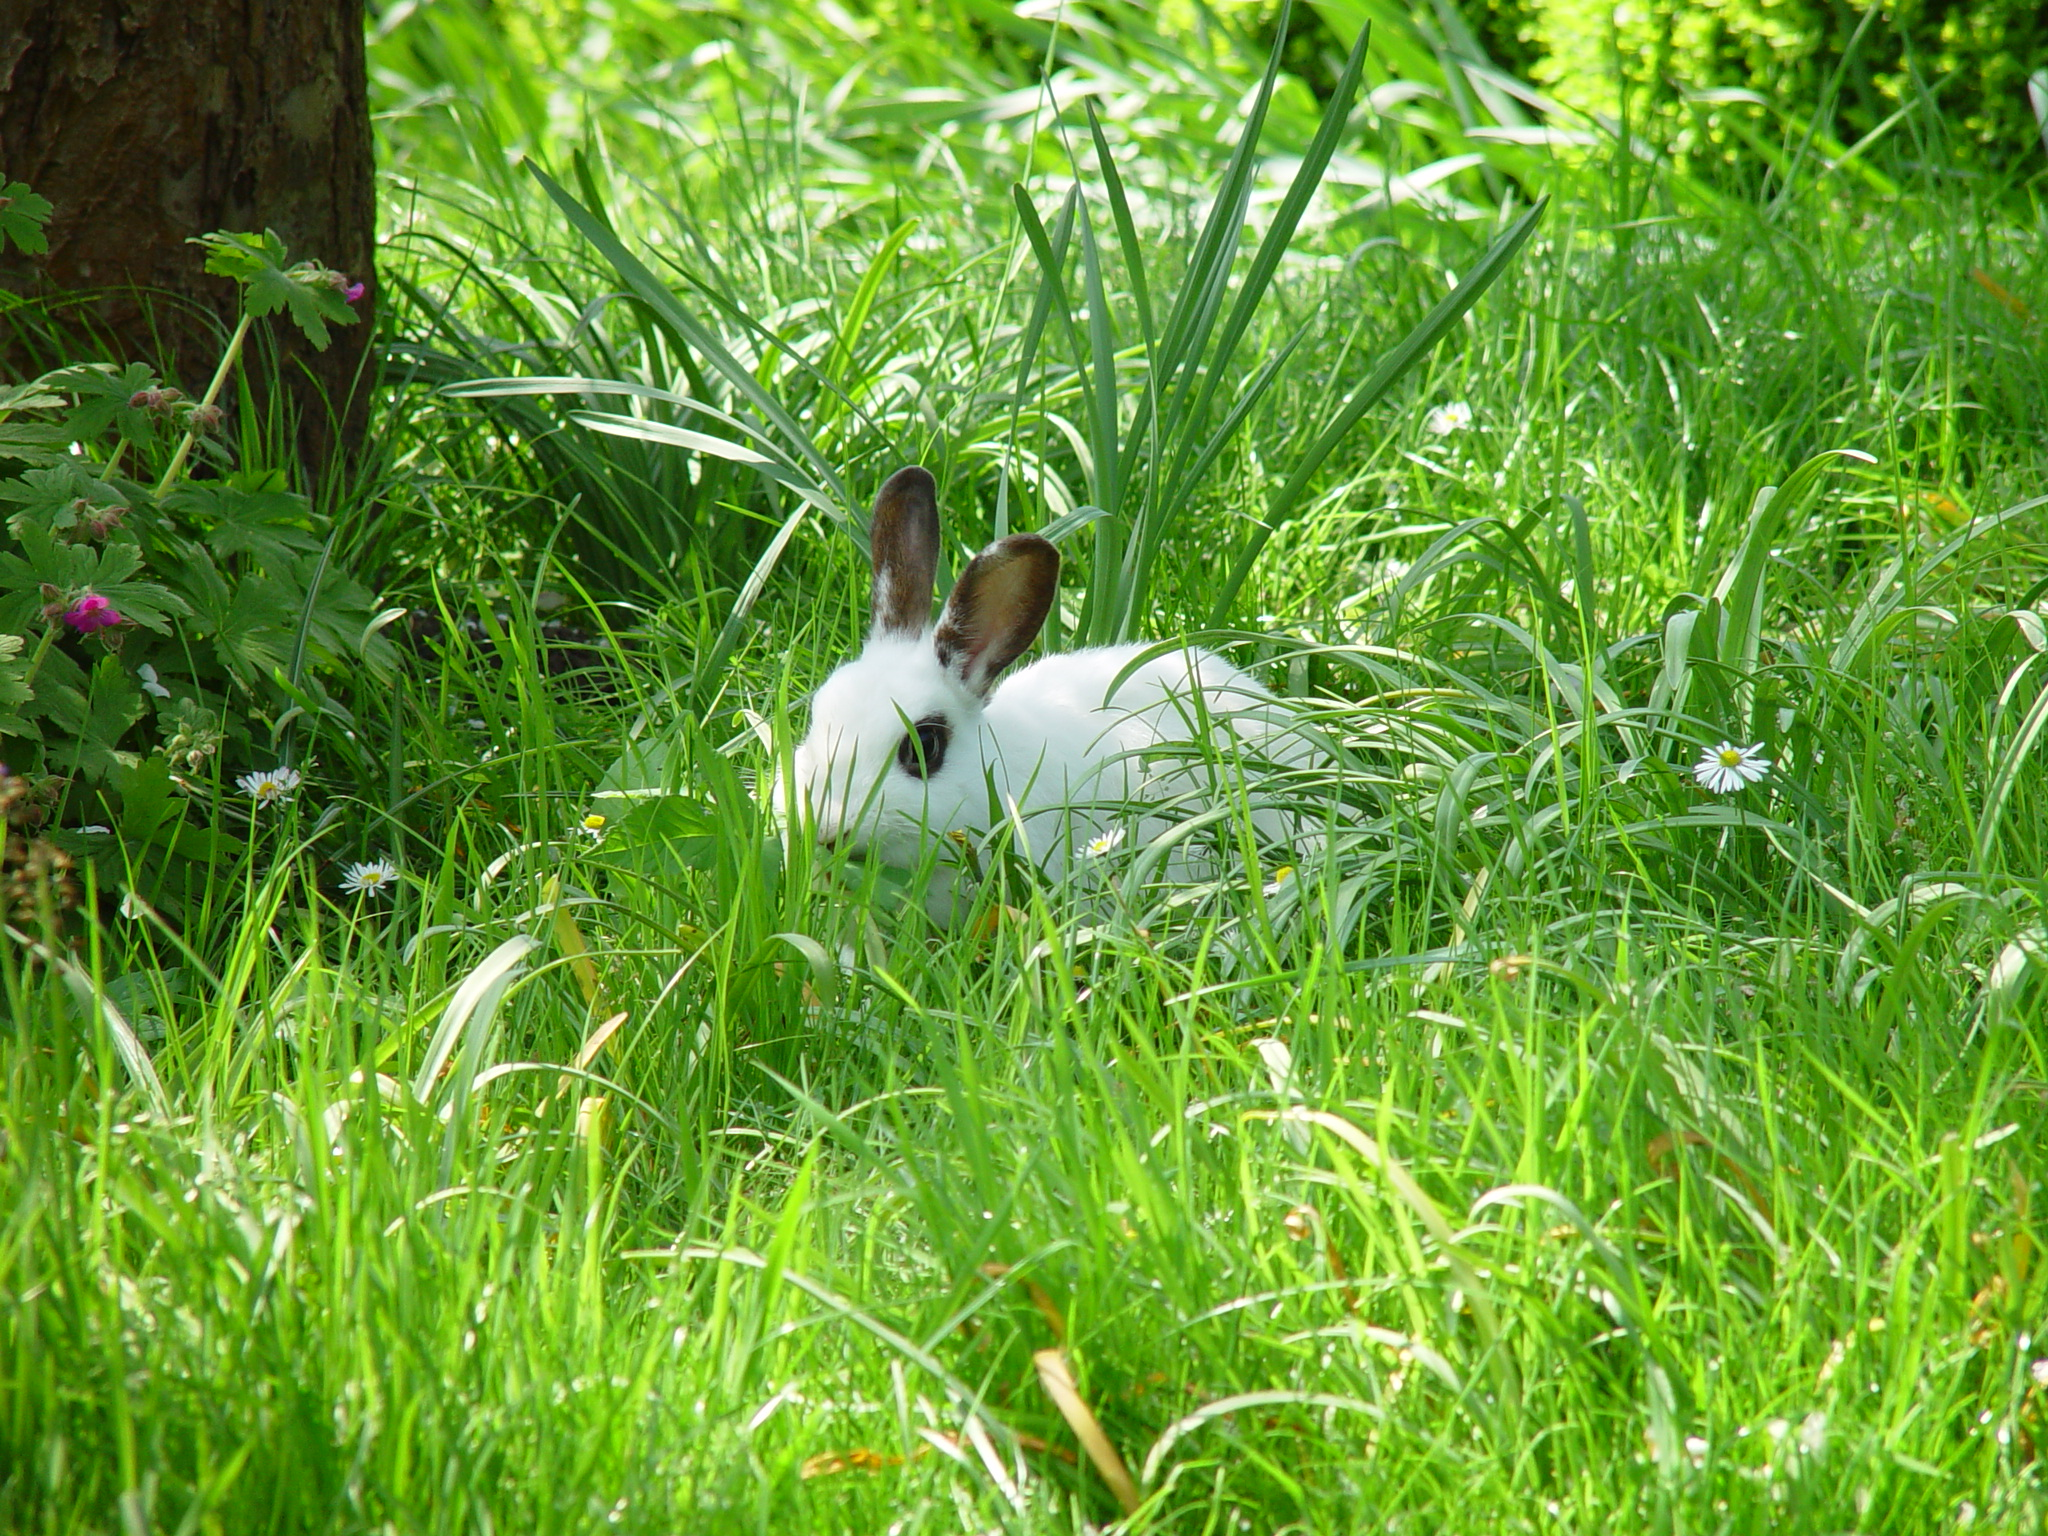 Adventurous Bunnies Explore the Lawn and Tall Grasses 4